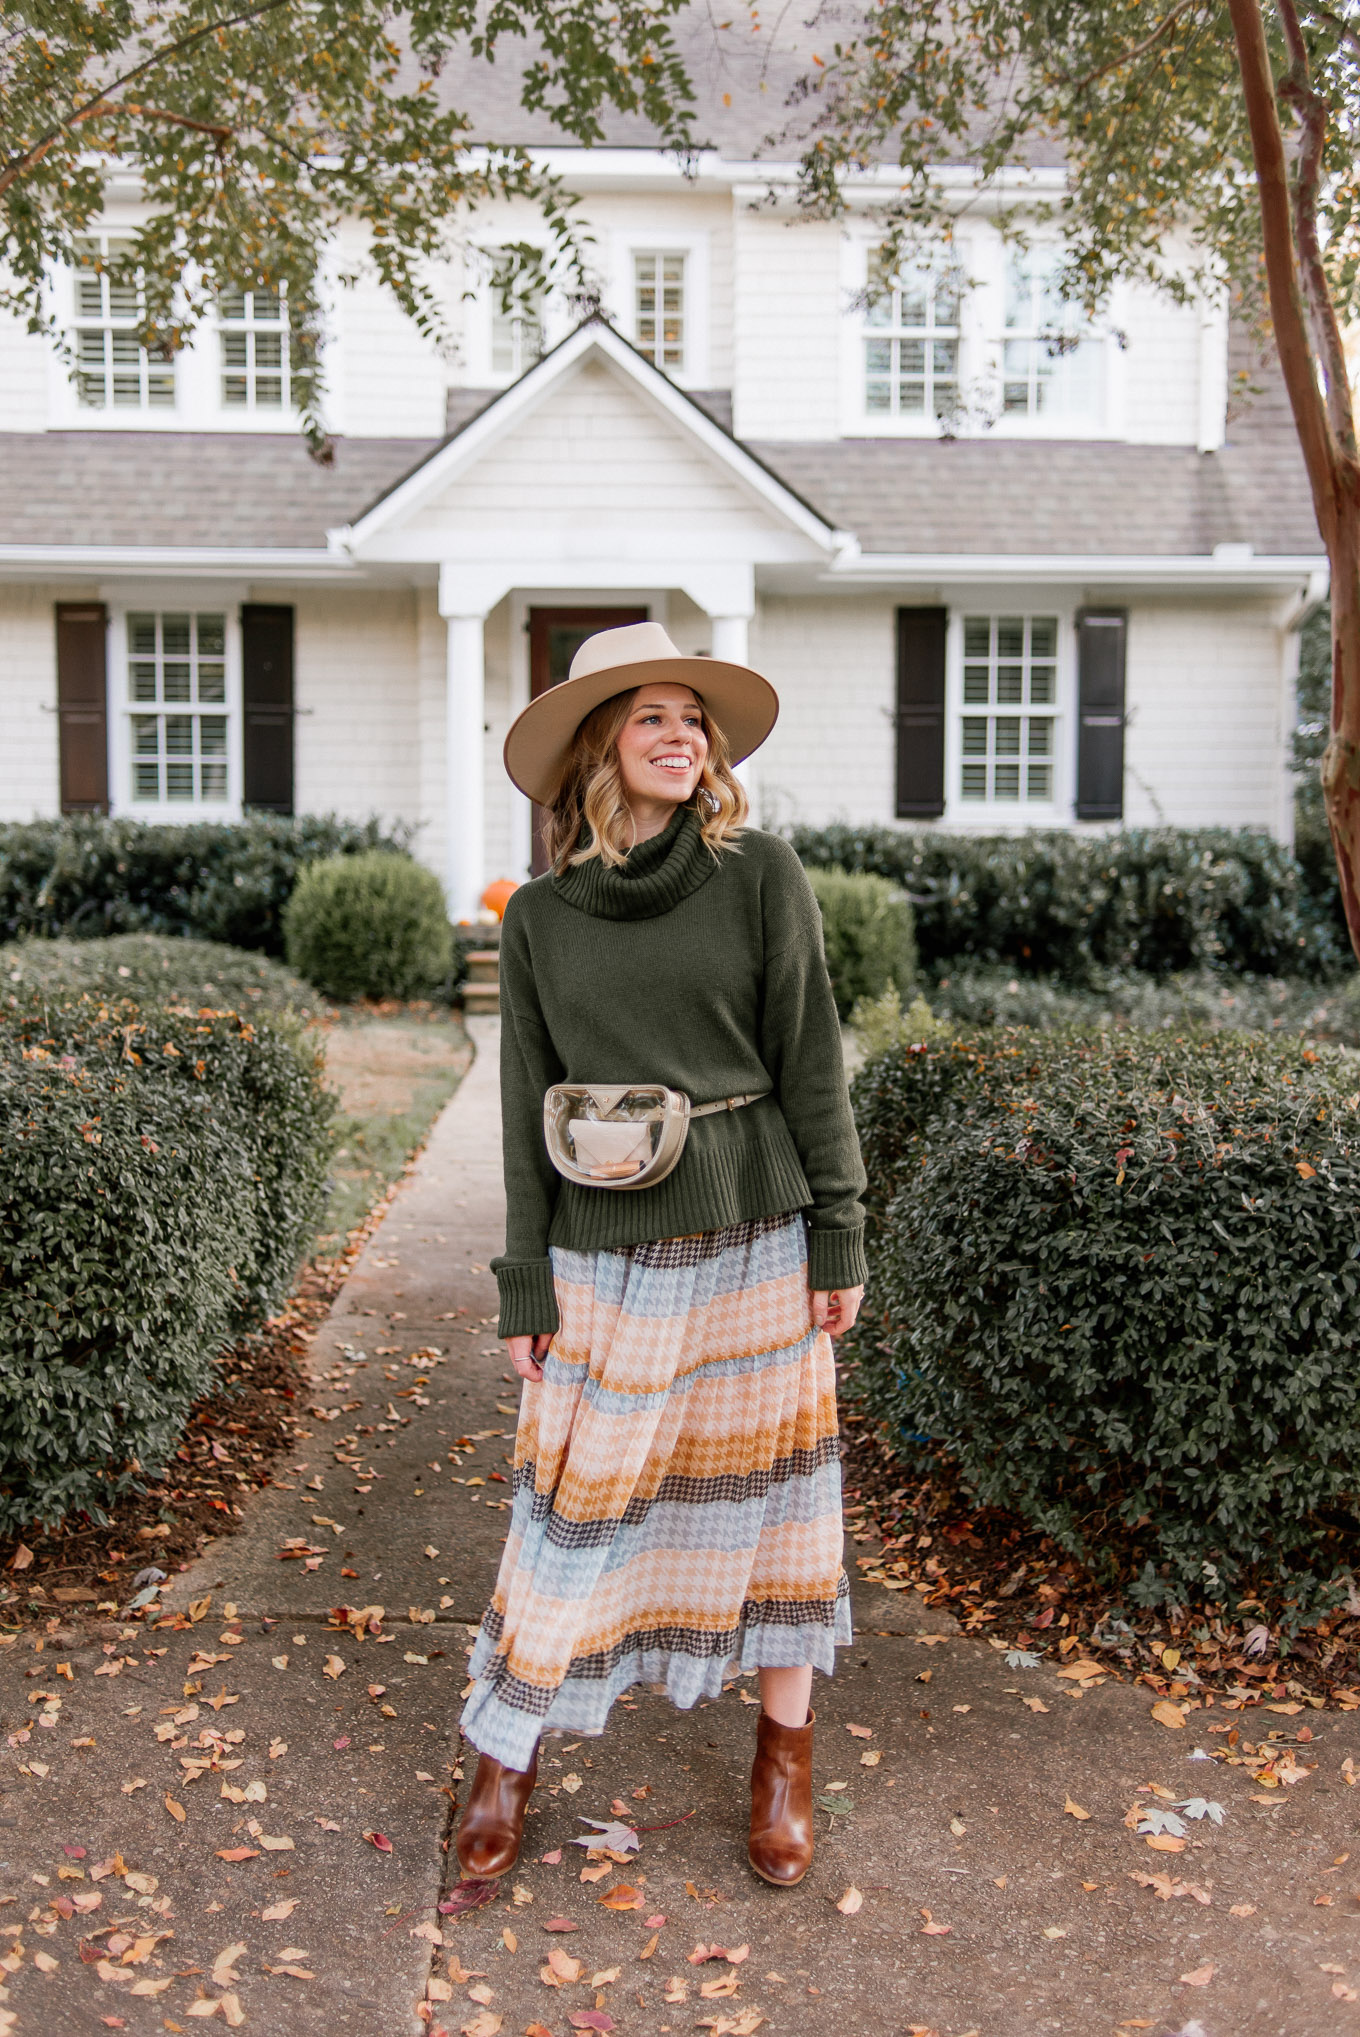 Tips on Creating a Capsule Wardrobe | Clear Game Day Belt Bag | Turtleneck Sweater, Plaid Midi Dress, Cognac Leather Booties, Lack of Color Wool Hat, Metallic Clear Belt Bag | Louella Reese